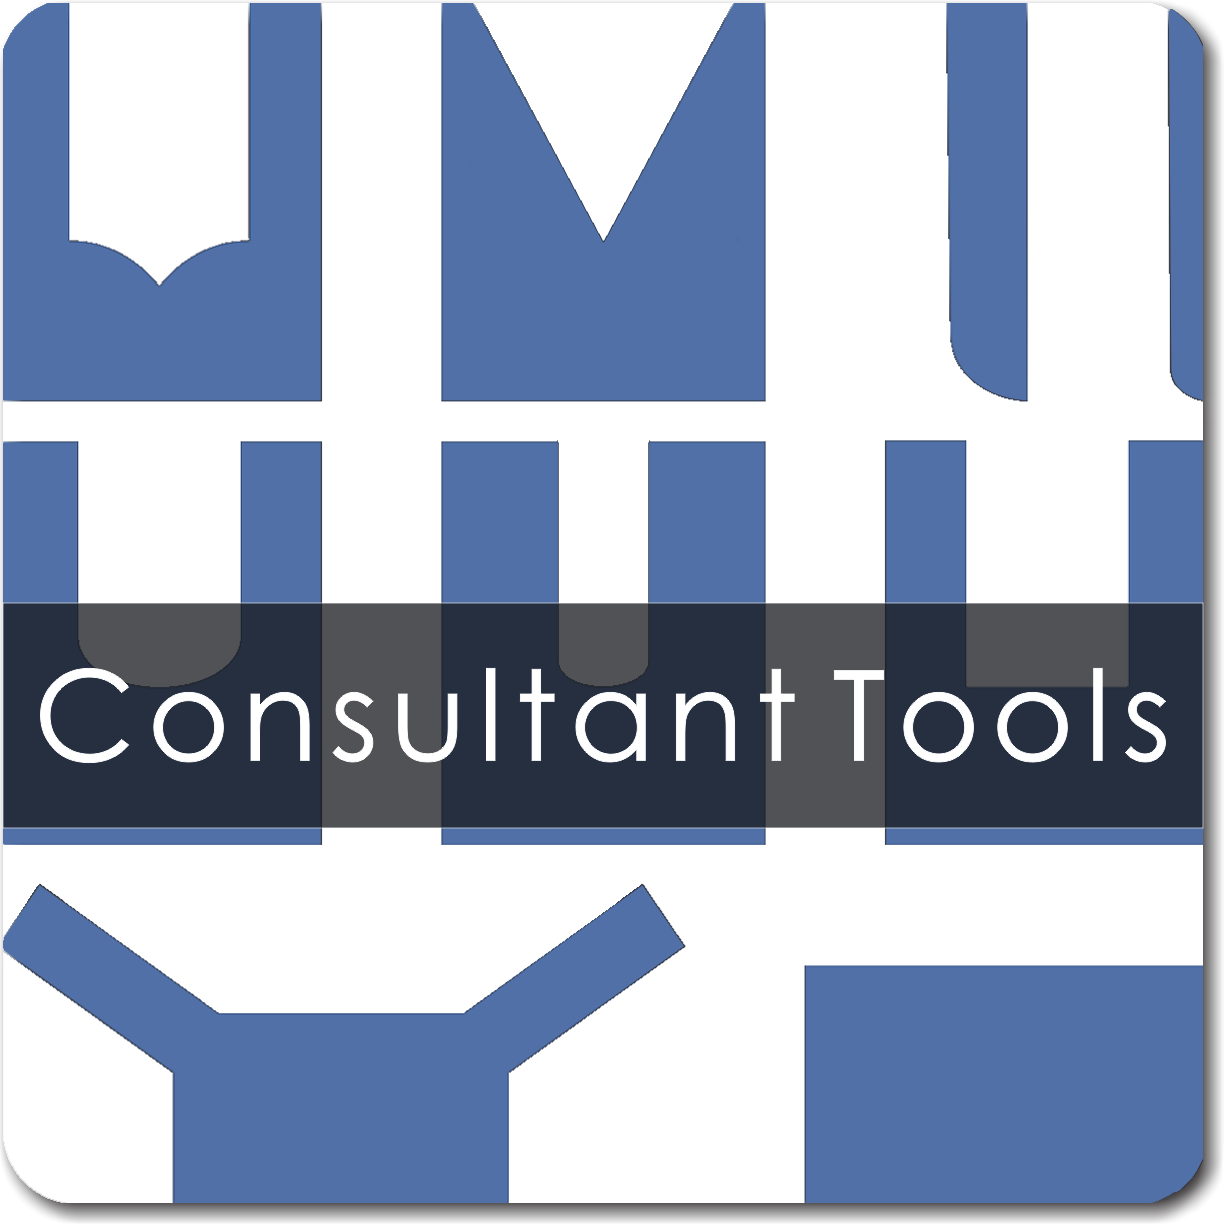 consultant-tools.png